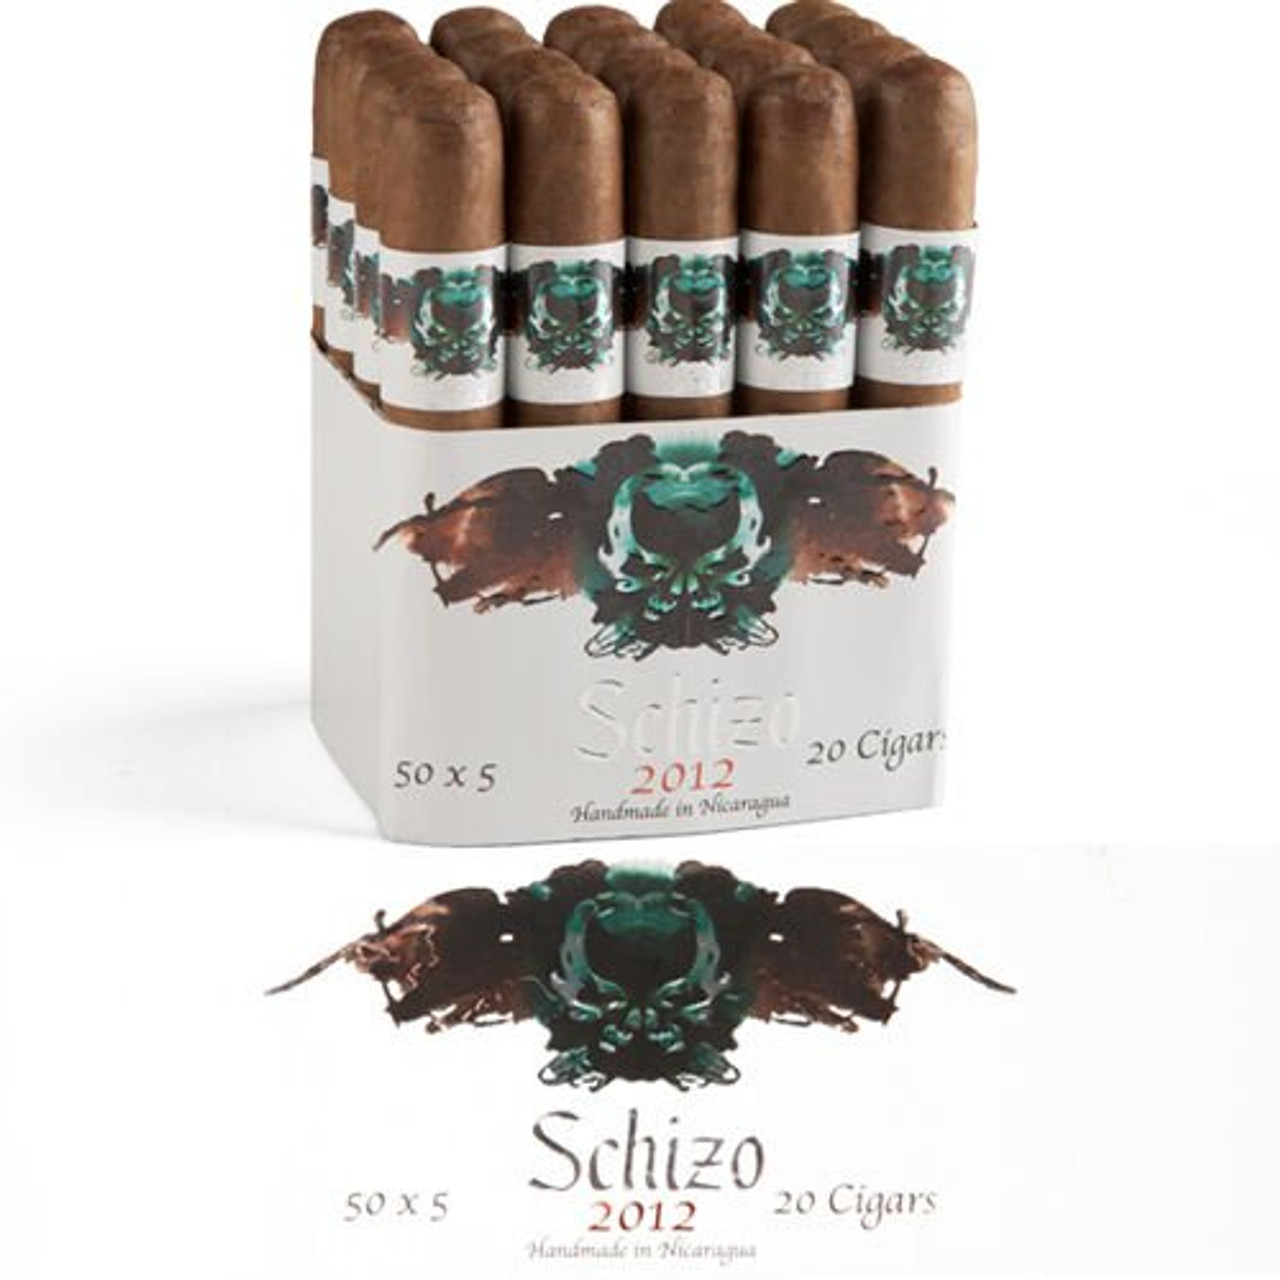 Asylum Schizo 6 X 50 Maduro Cigars - 6 x 50 (Bundle of 20)